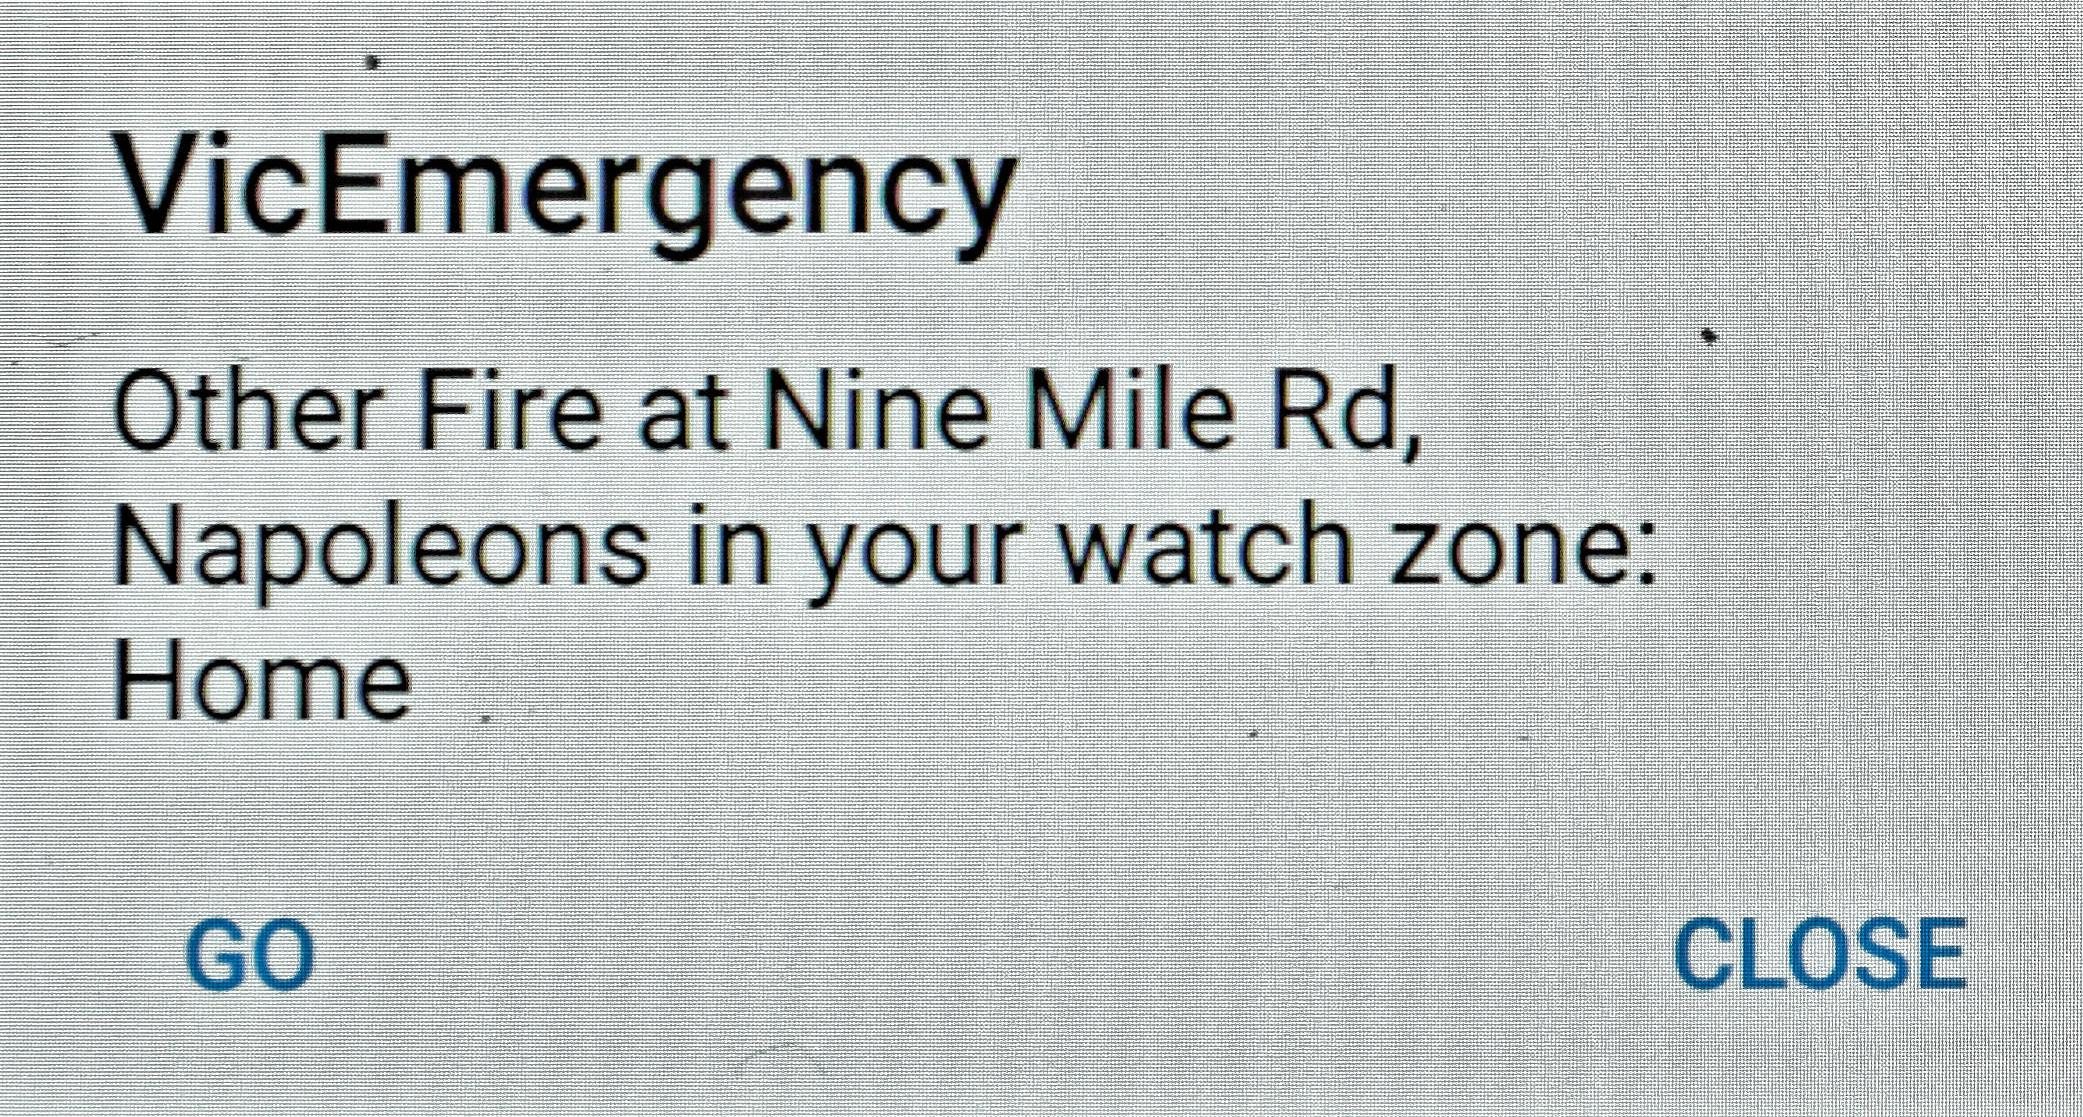 VicEmergency-2-detail.jpeg